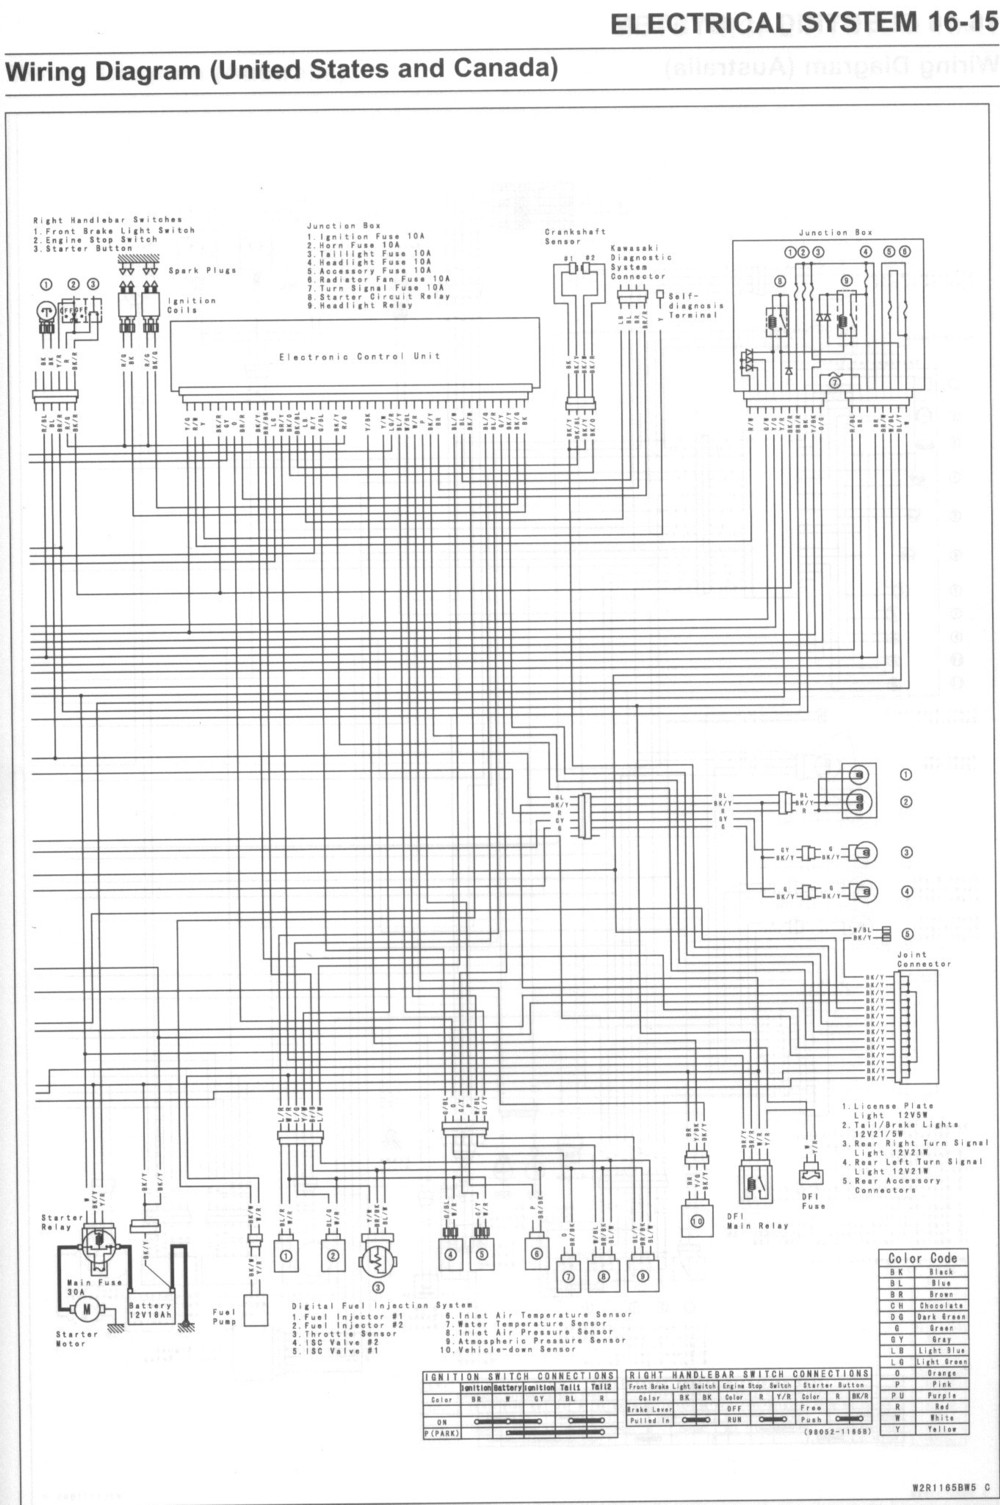 Kawasaki Wiring Color Code Motorcycle Image Ideas Suzuki X4 125 Diagram Download 1000 X 1505